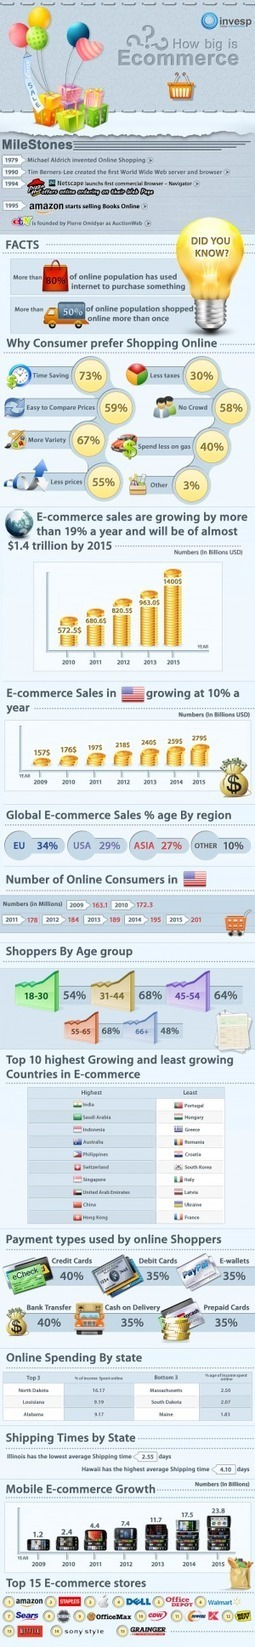 [INFOGRAPHIC] How Big Is Ecommerce | Social media culture | Scoop.it